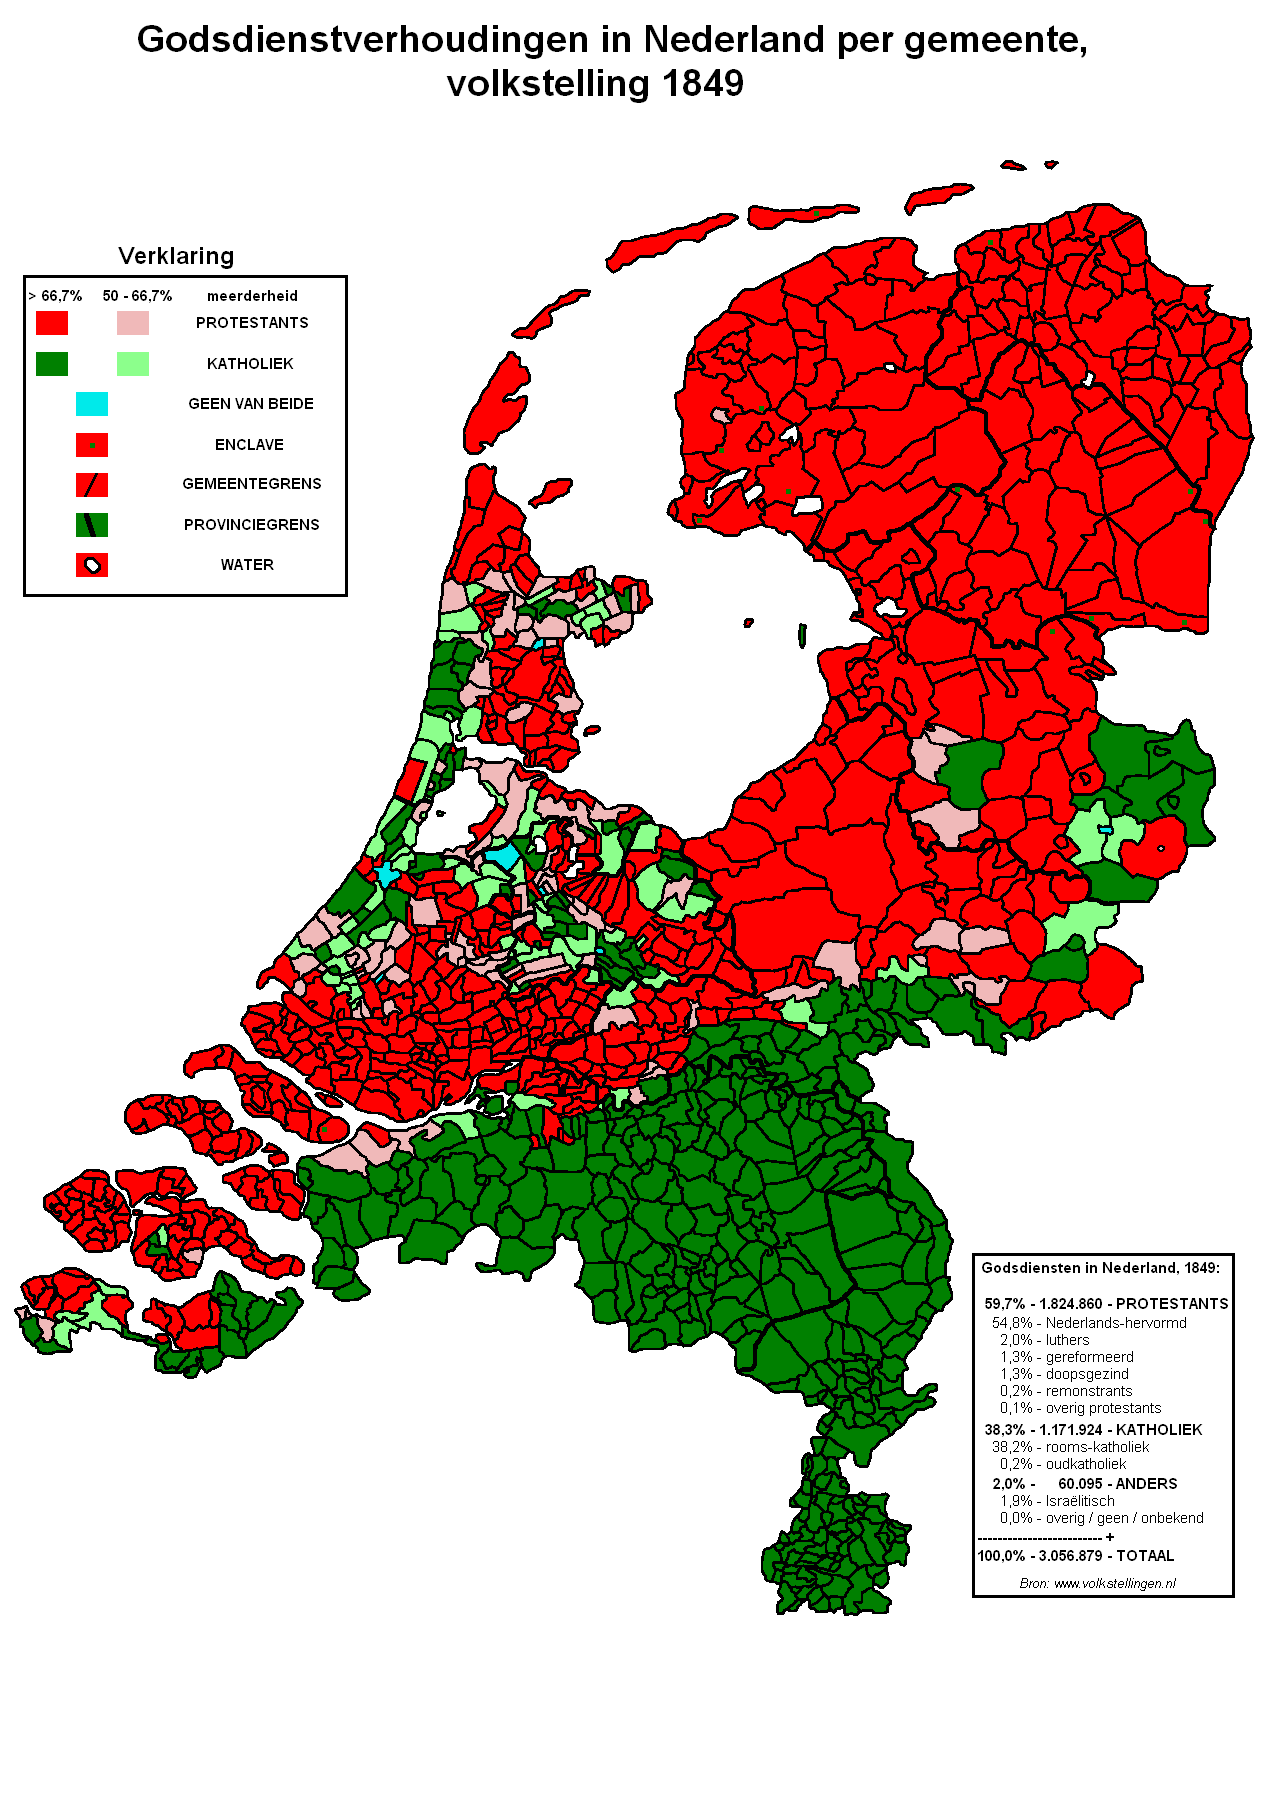 Religion in the netherlands wikipedia religion in the netherlands in 1849 nvjuhfo Choice Image